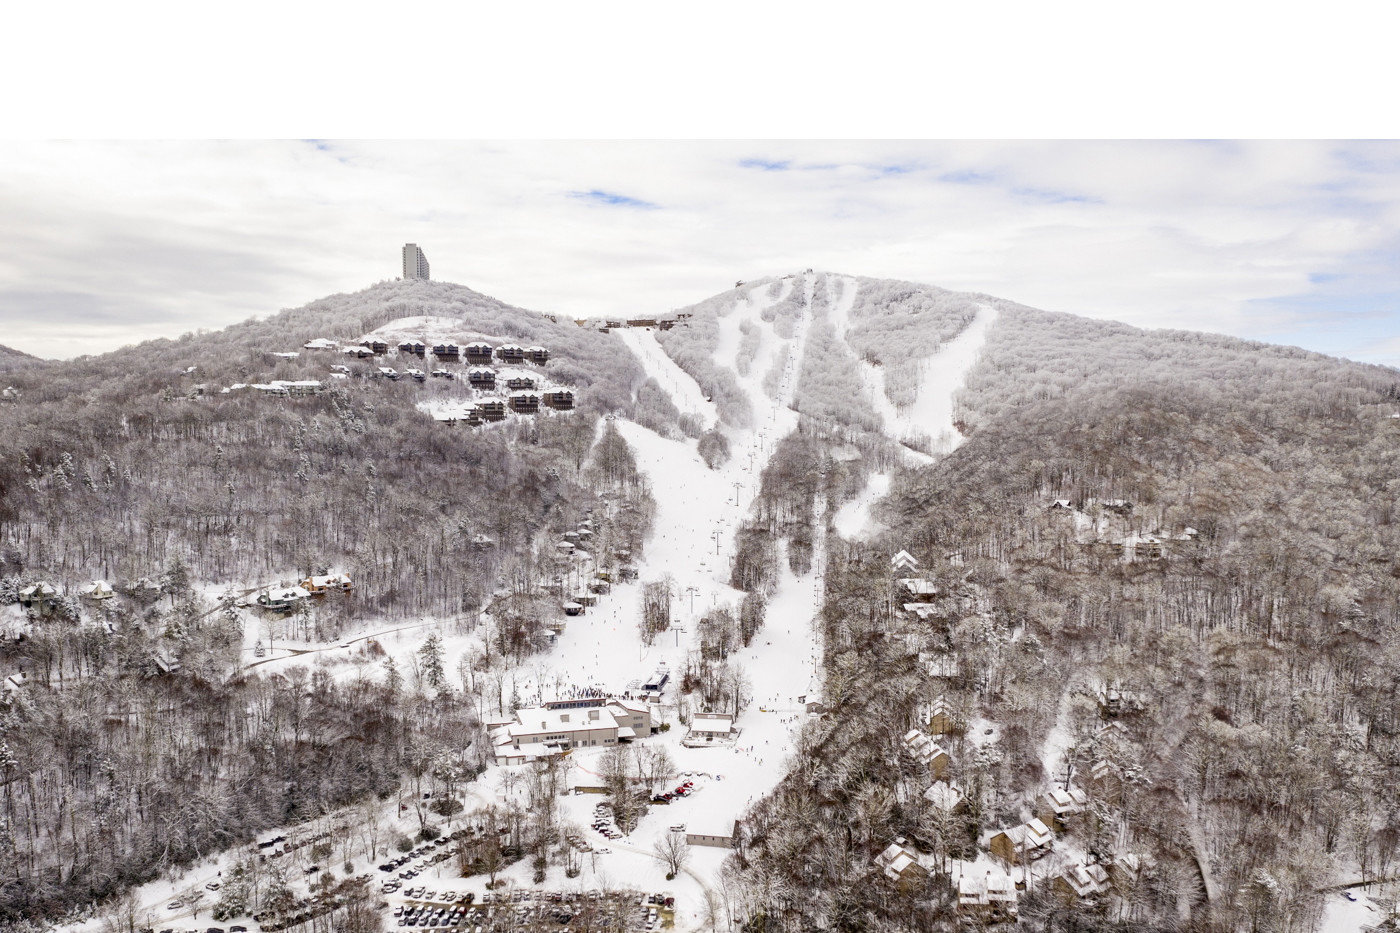 Sugar Mountain Resort, North Carolinaundefined